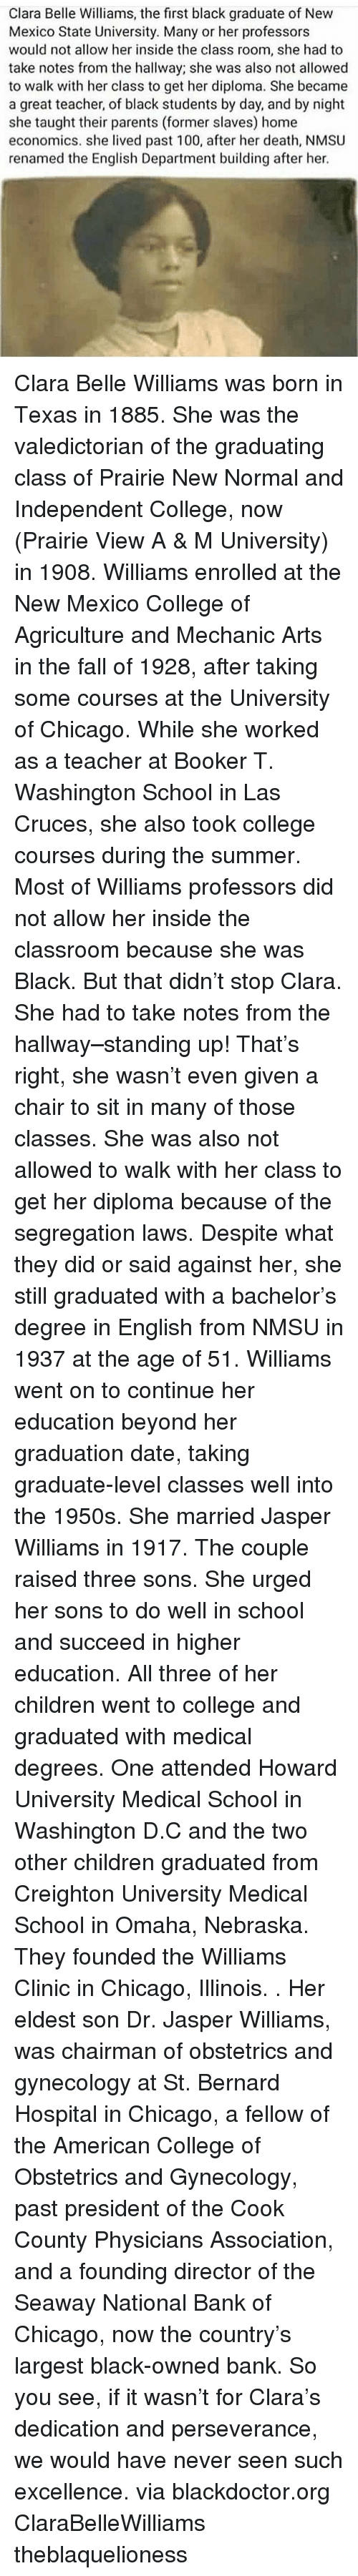 agriculture: Clara Belle Williams, the first black graduate of New  Mexico State University. Many or her professors  would not allow her inside the class room, she had to  take notes from the hallway; she was also not allowed  to walk with her class to get her diploma. She became  a great teacher, of black students by day, and by night  she taught their parents (former slaves) home  economics. she lived past 100, after her death, NMSU  renamed the English Department building after her. Clara Belle Williams was born in Texas in 1885. She was the valedictorian of the graduating class of Prairie New Normal and Independent College, now (Prairie View A & M University) in 1908. Williams enrolled at the New Mexico College of Agriculture and Mechanic Arts in the fall of 1928, after taking some courses at the University of Chicago. While she worked as a teacher at Booker T. Washington School in Las Cruces, she also took college courses during the summer. Most of Williams professors did not allow her inside the classroom because she was Black. But that didn't stop Clara. She had to take notes from the hallway–standing up! That's right, she wasn't even given a chair to sit in many of those classes. She was also not allowed to walk with her class to get her diploma because of the segregation laws. Despite what they did or said against her, she still graduated with a bachelor's degree in English from NMSU in 1937 at the age of 51. Williams went on to continue her education beyond her graduation date, taking graduate-level classes well into the 1950s. She married Jasper Williams in 1917. The couple raised three sons. She urged her sons to do well in school and succeed in higher education. All three of her children went to college and graduated with medical degrees. One attended Howard University Medical School in Washington D.C and the two other children graduated from Creighton University Medical School in Omaha, Nebraska. They founded the Williams Clinic in Chicago, Illinois. . Her eldest son Dr. Jasper Williams, was chairman of obstetrics and gynecology at St. Bernard Hospital in Chicago, a fellow of the American College of Obstetrics and Gynecology, past president of the Cook County Physicians Association, and a founding director of the Seaway National Bank of Chicago, now the country's largest black-owned bank. So you see, if it wasn't for Clara's dedication and perseverance, we would have never seen such excellence. via blackdoctor.org ClaraBelleWilliams theblaquelioness